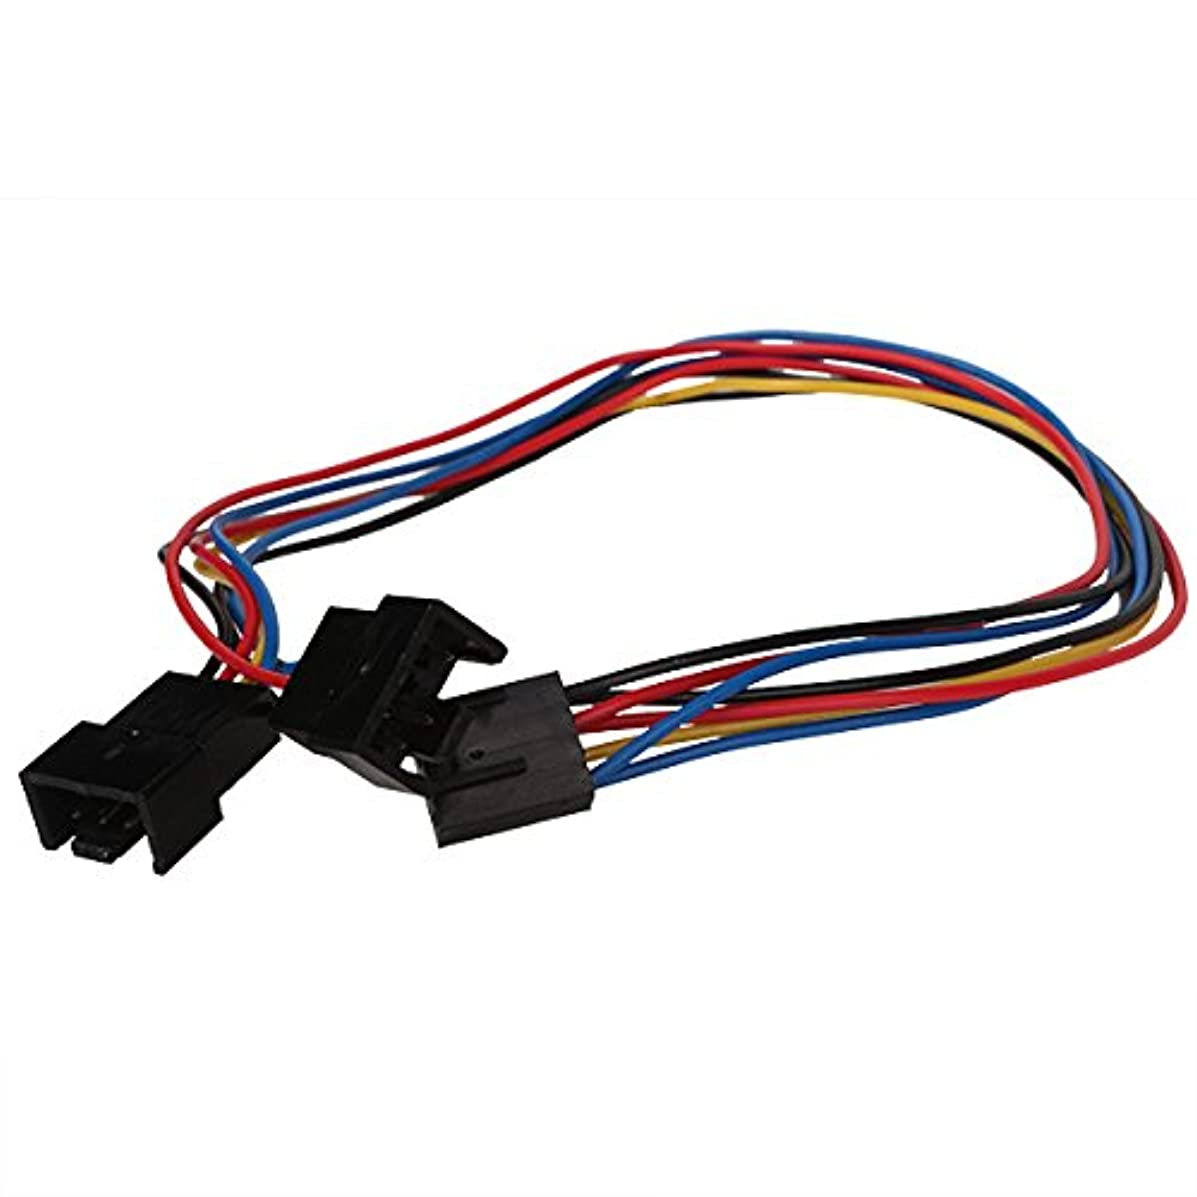 30cm PC Fan Connector 4 Pin to 2x 4pin/3pin PWM Thermostat Extension Cable